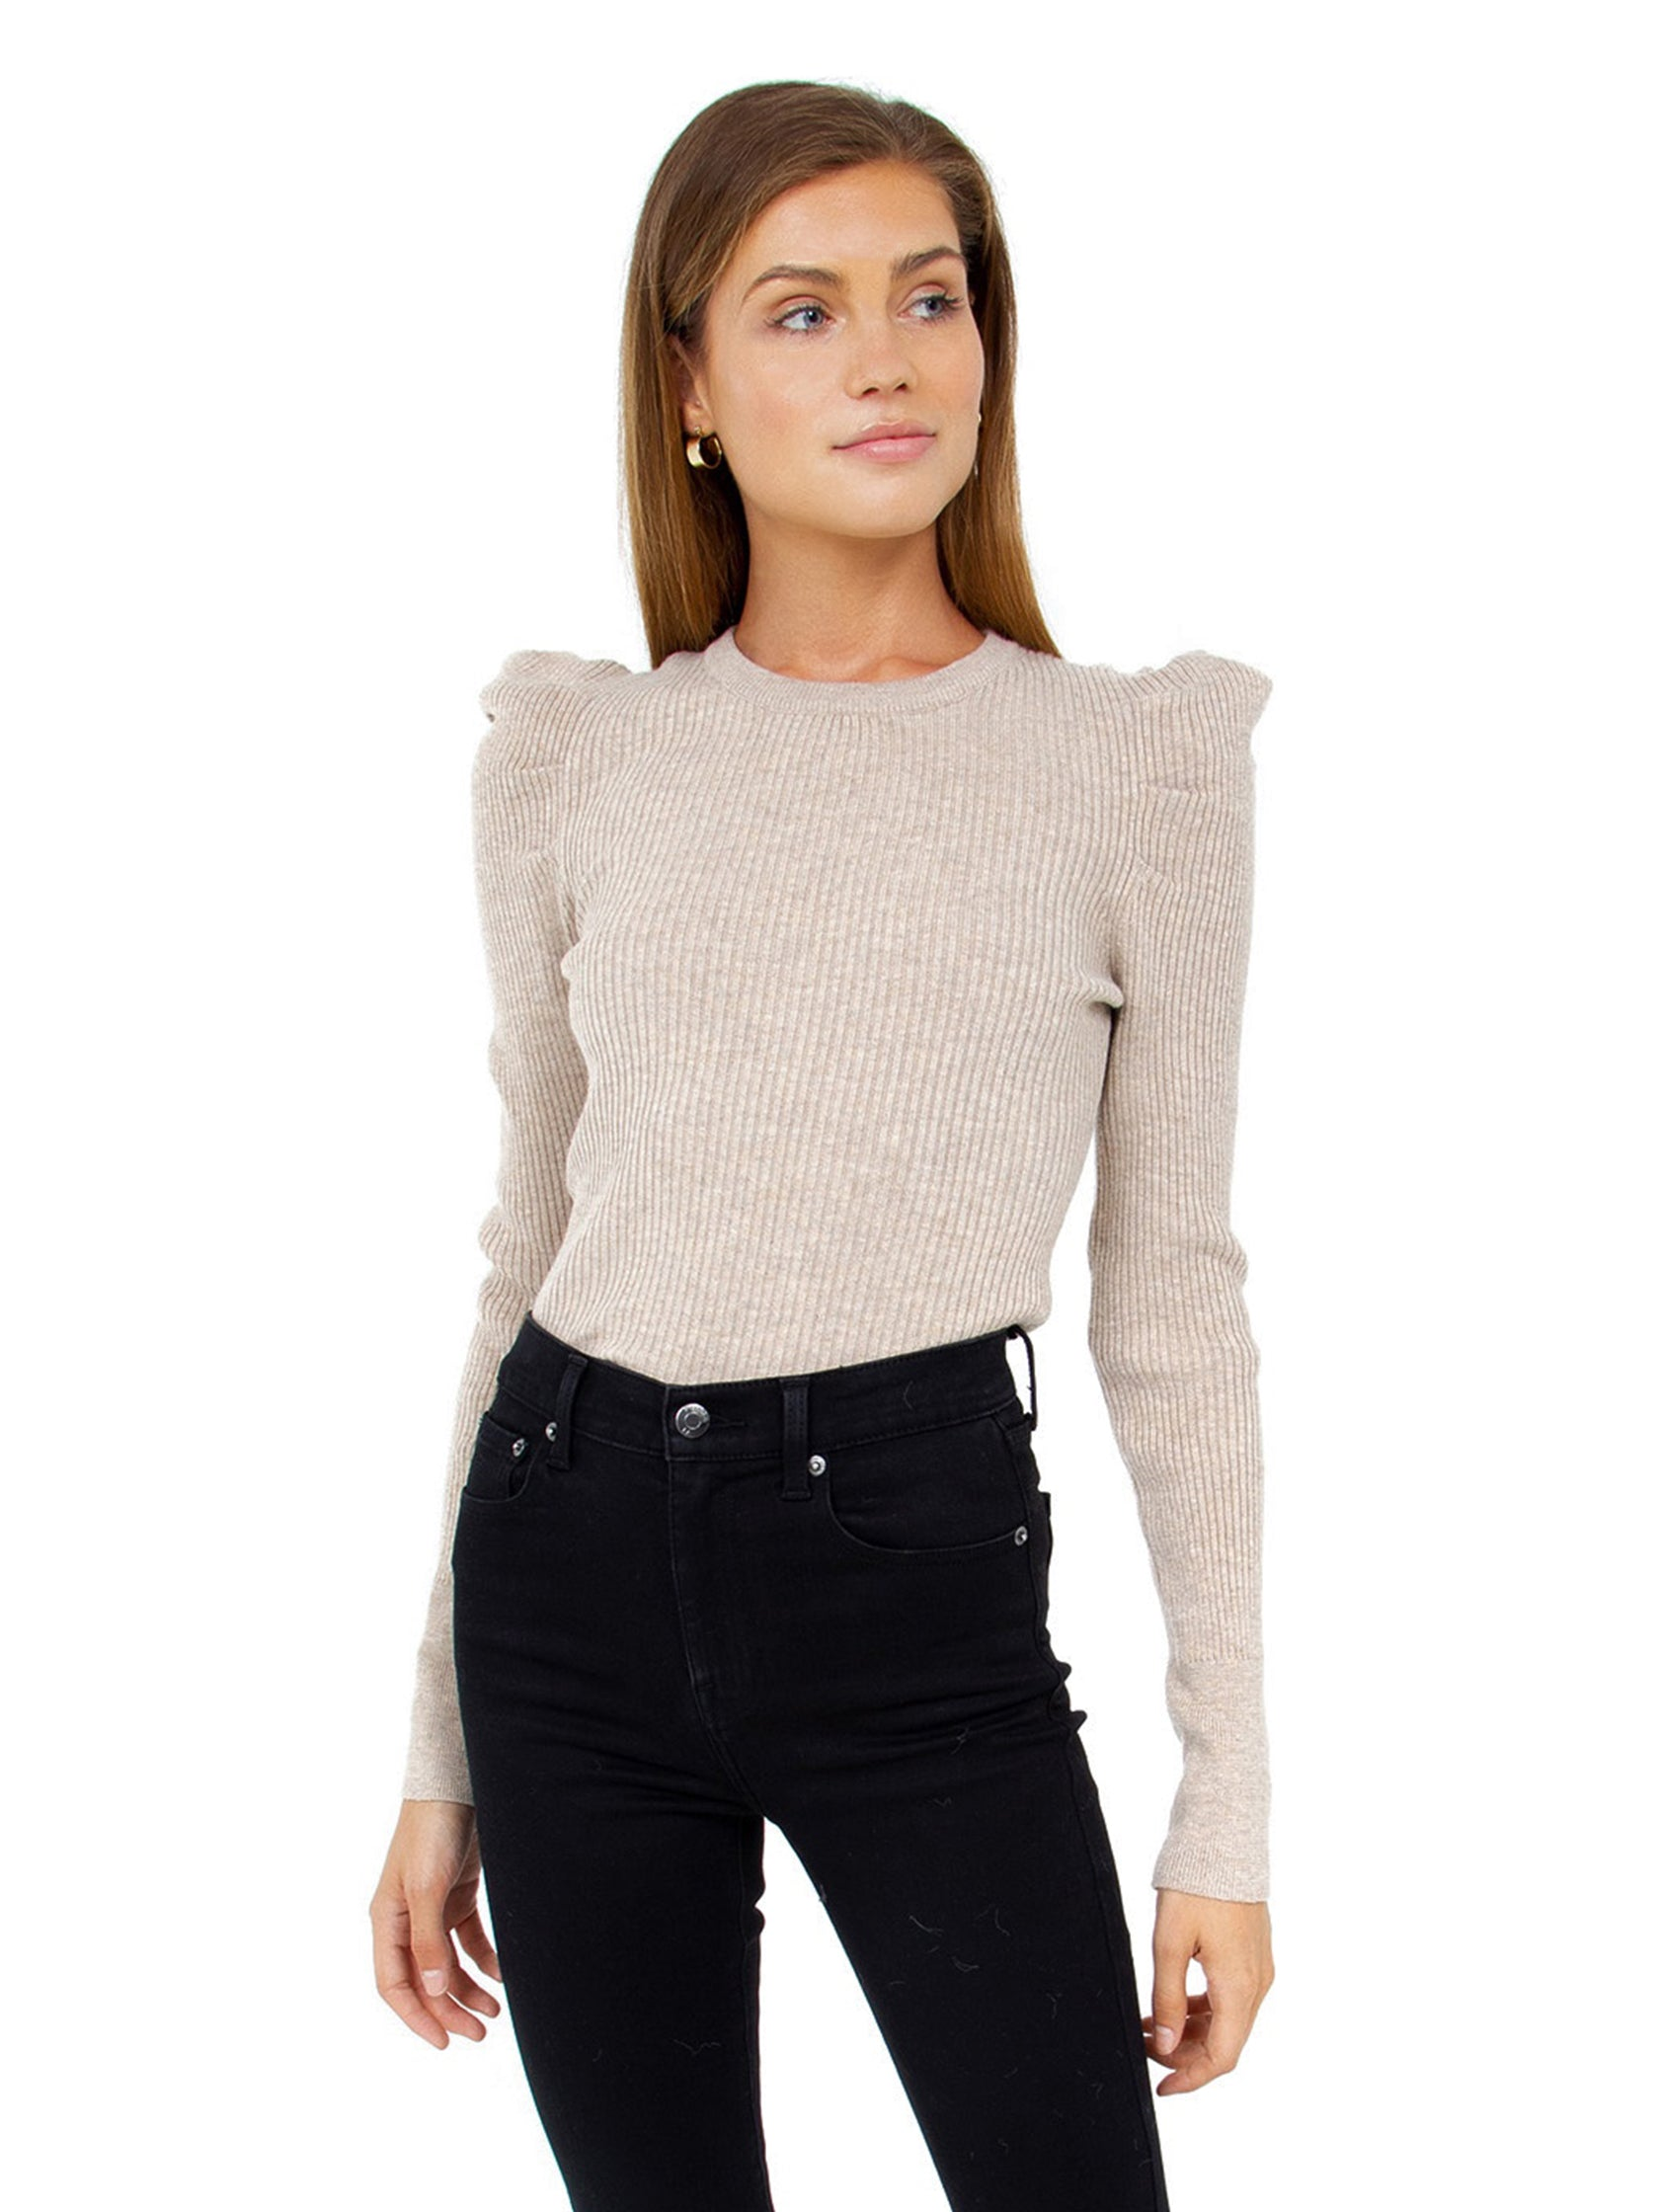 Woman wearing a sweater rental from FashionPass called Puff Sleeve Rib Sweater